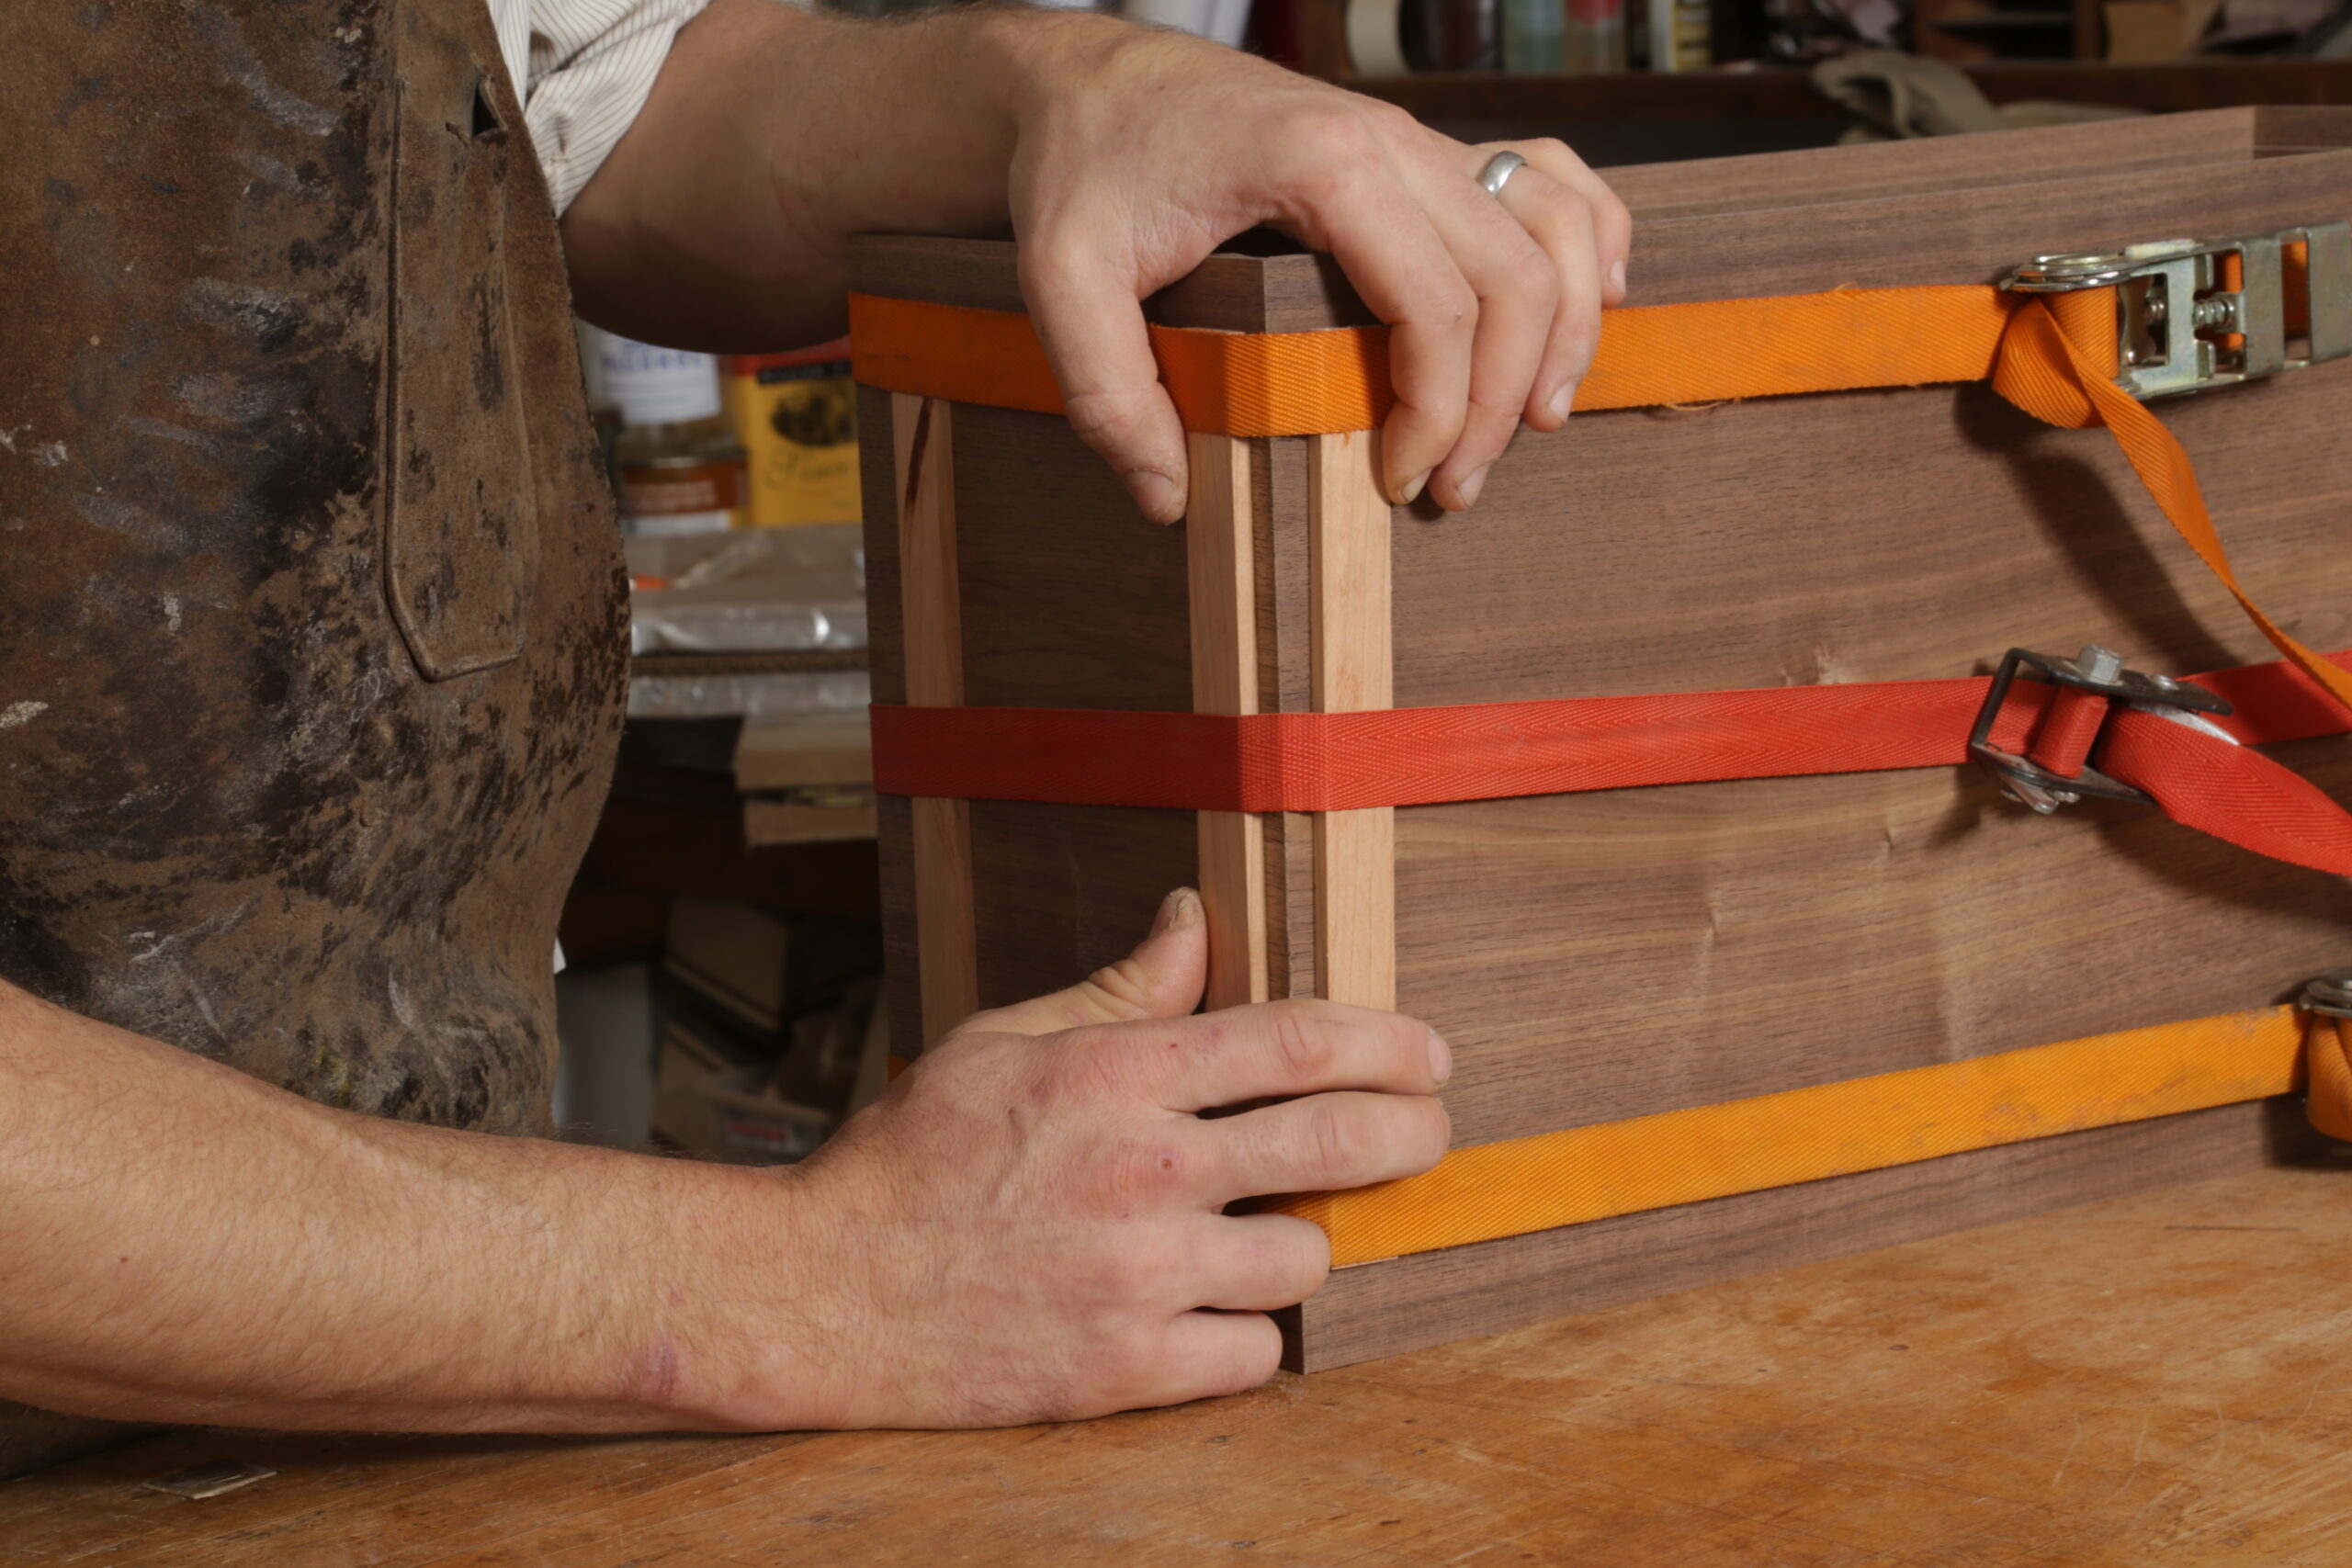 After tightening the ratchet straps, the author is pinching two strips of wood toward a corner of the box.